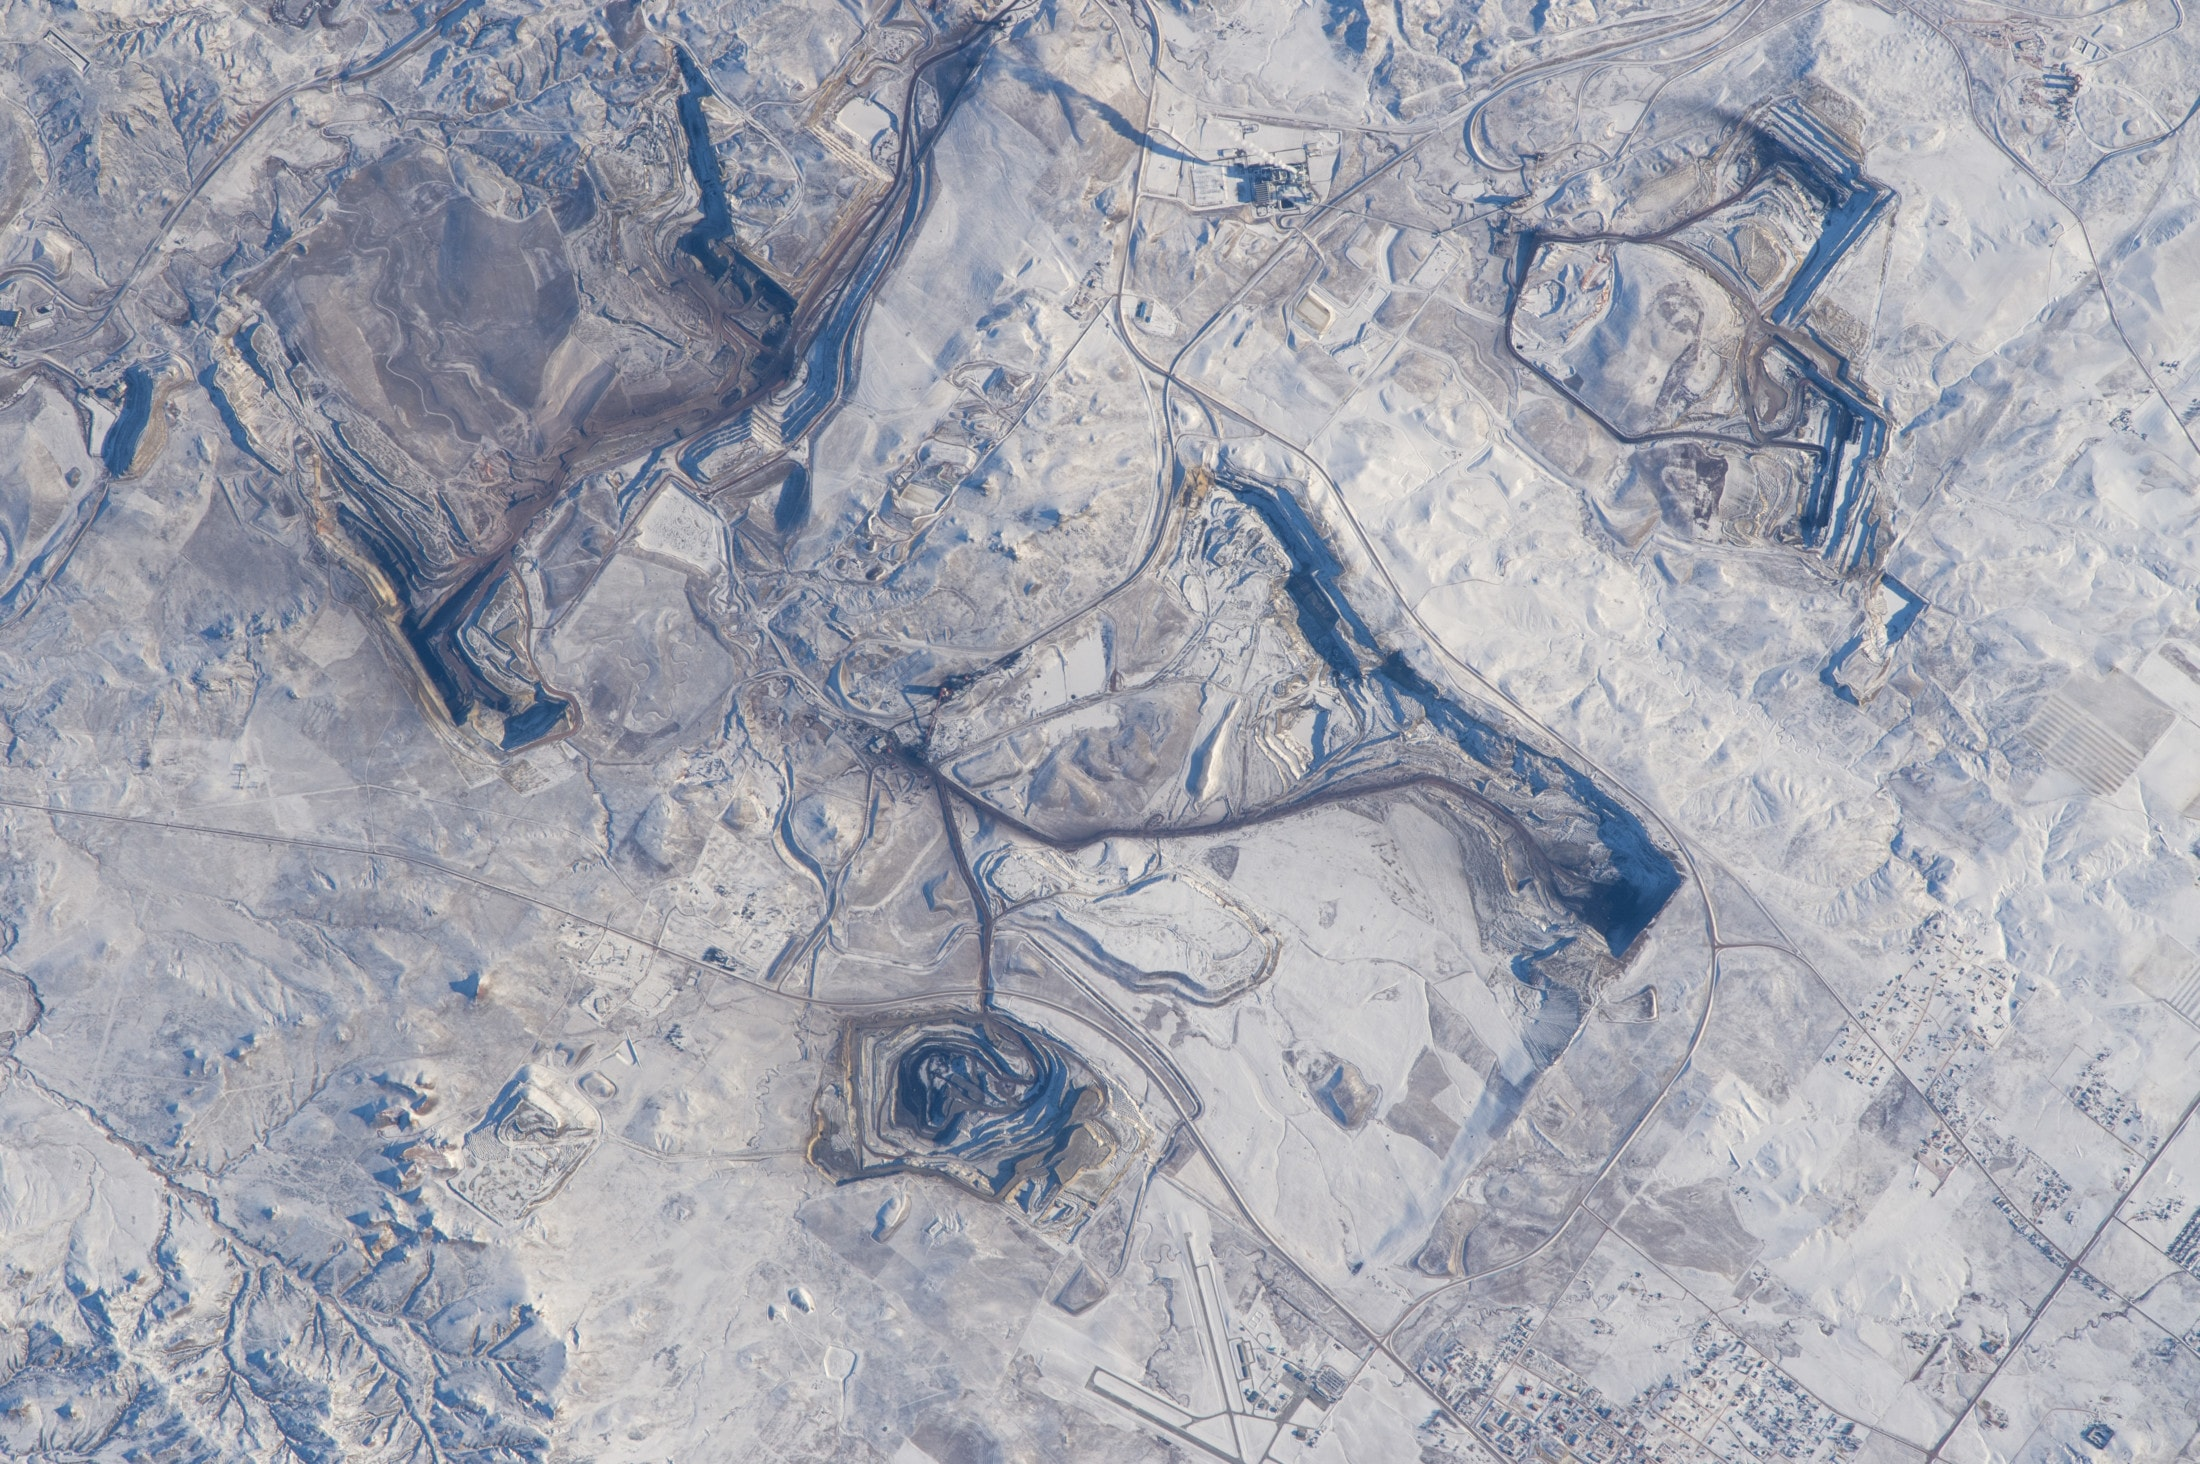 Wyoming Gilette coal pits NASA